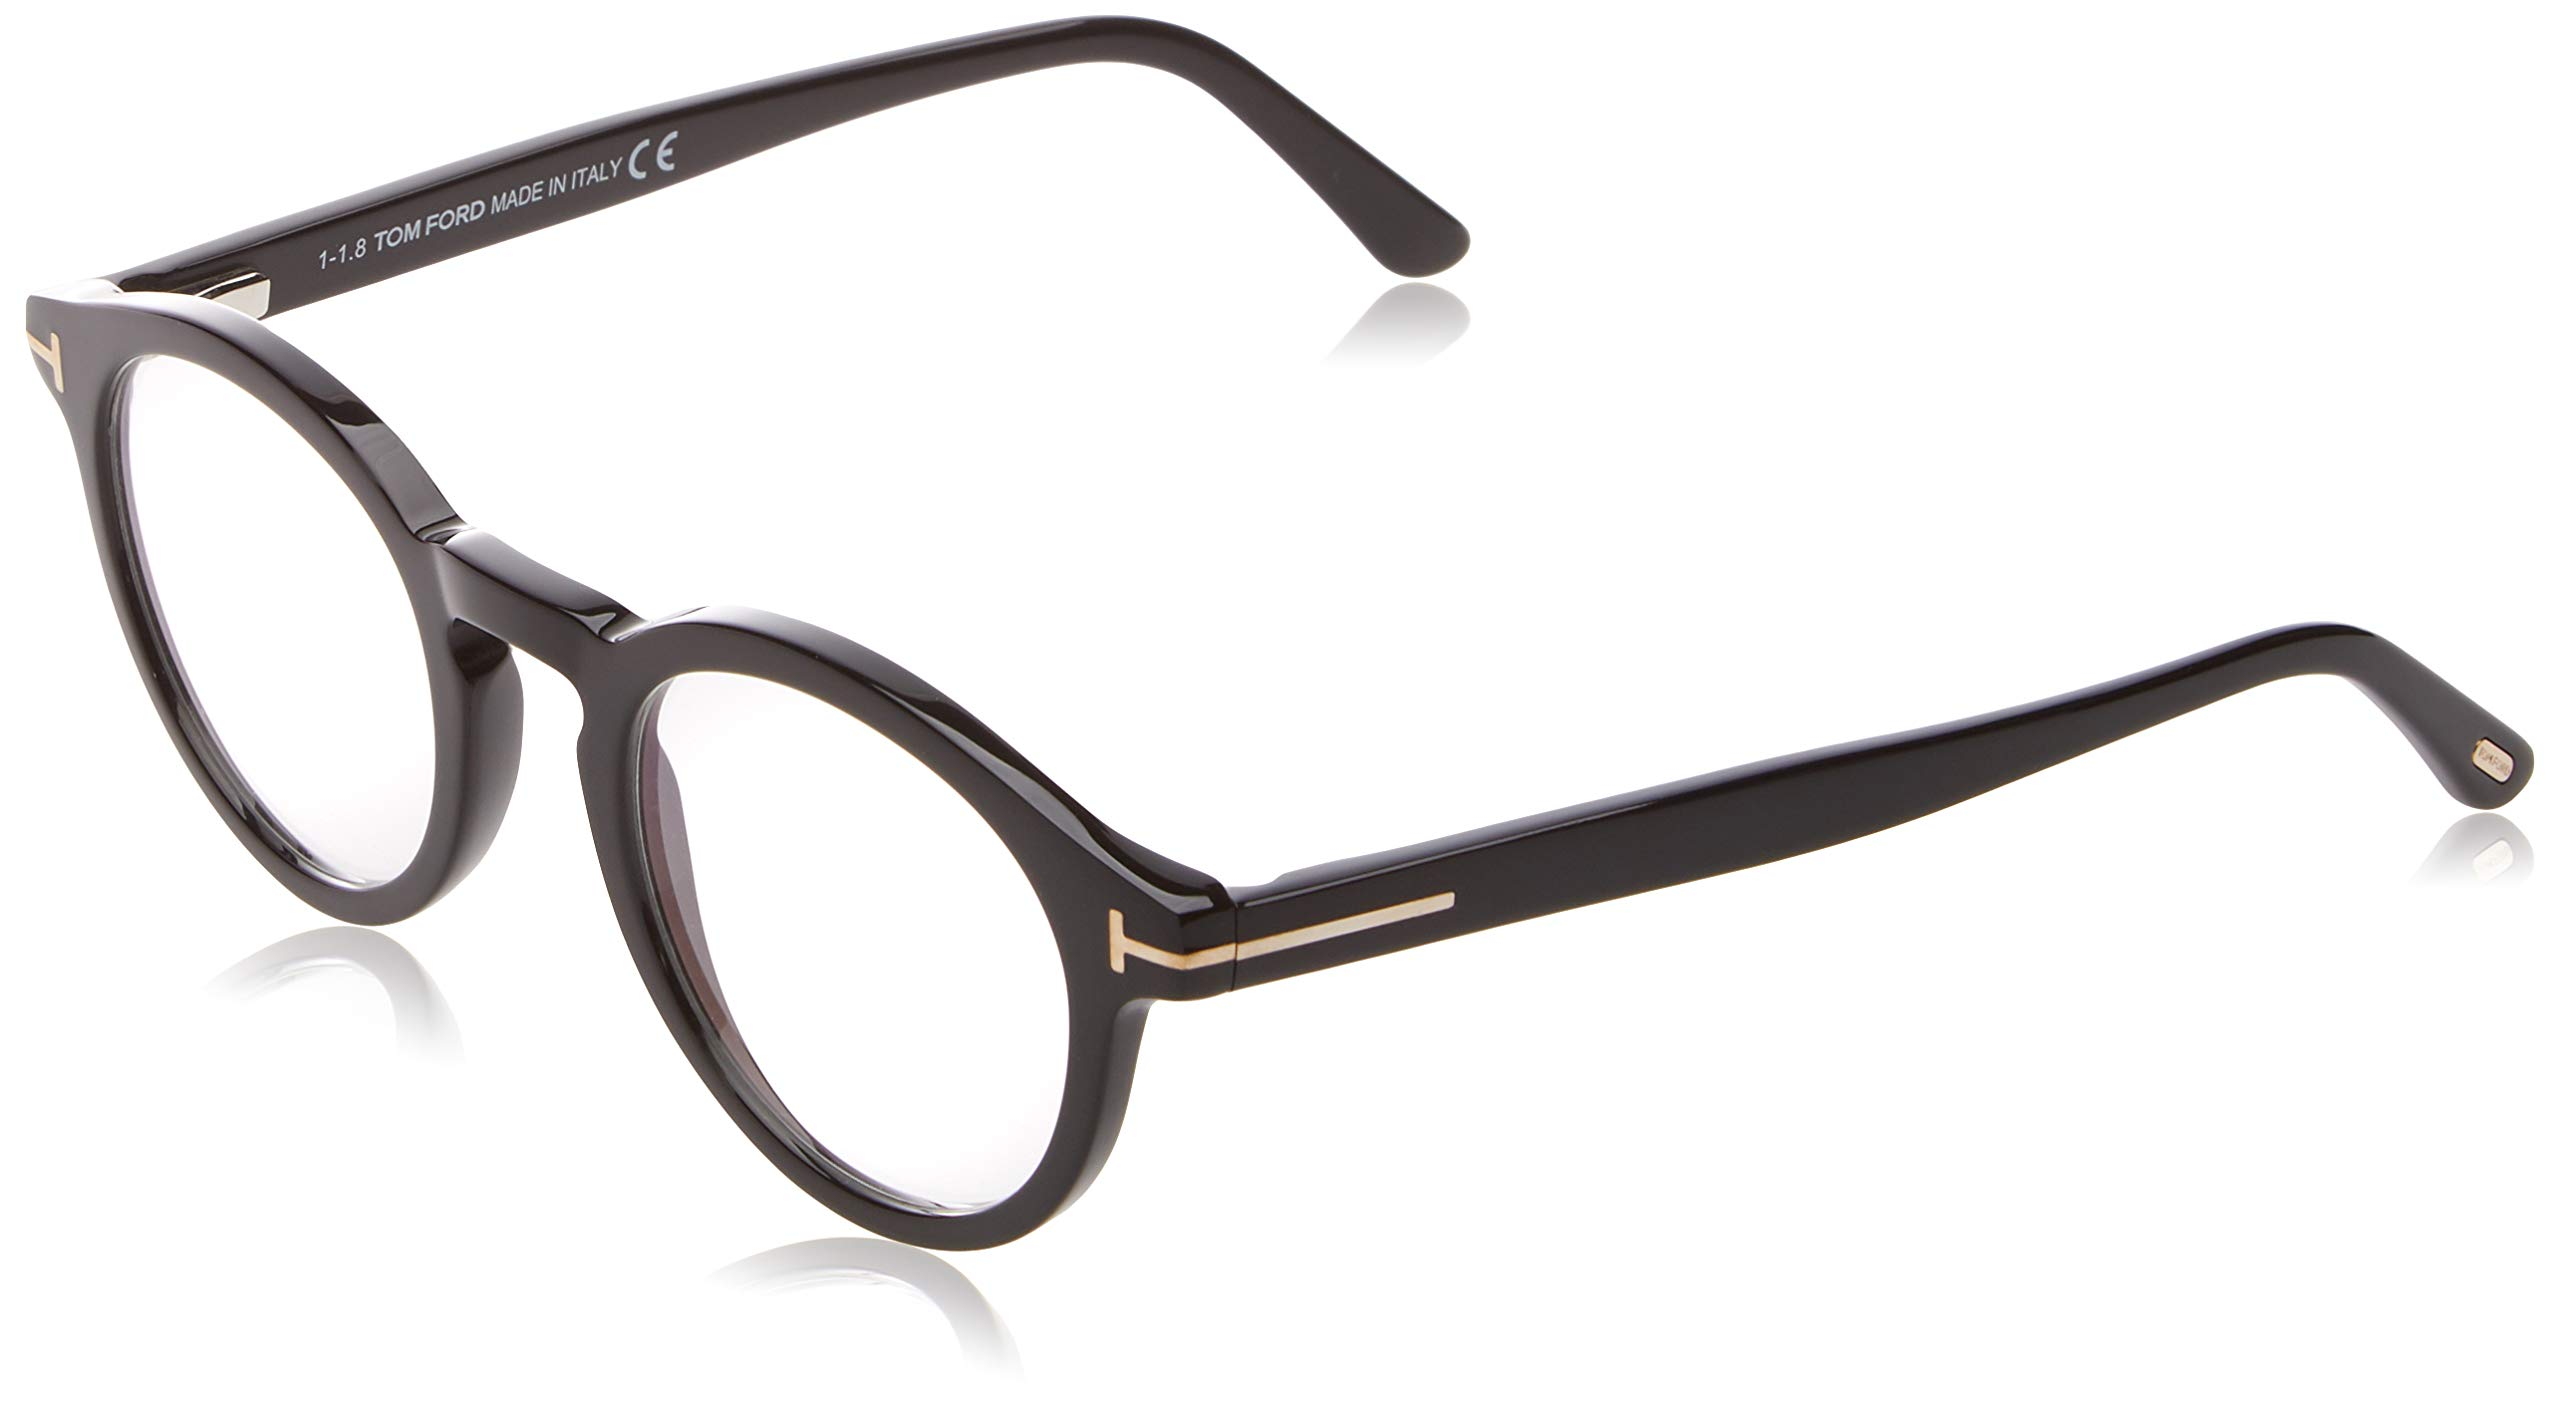 Eyeglasses Tom Ford FT 5529 -B 001 shiny black